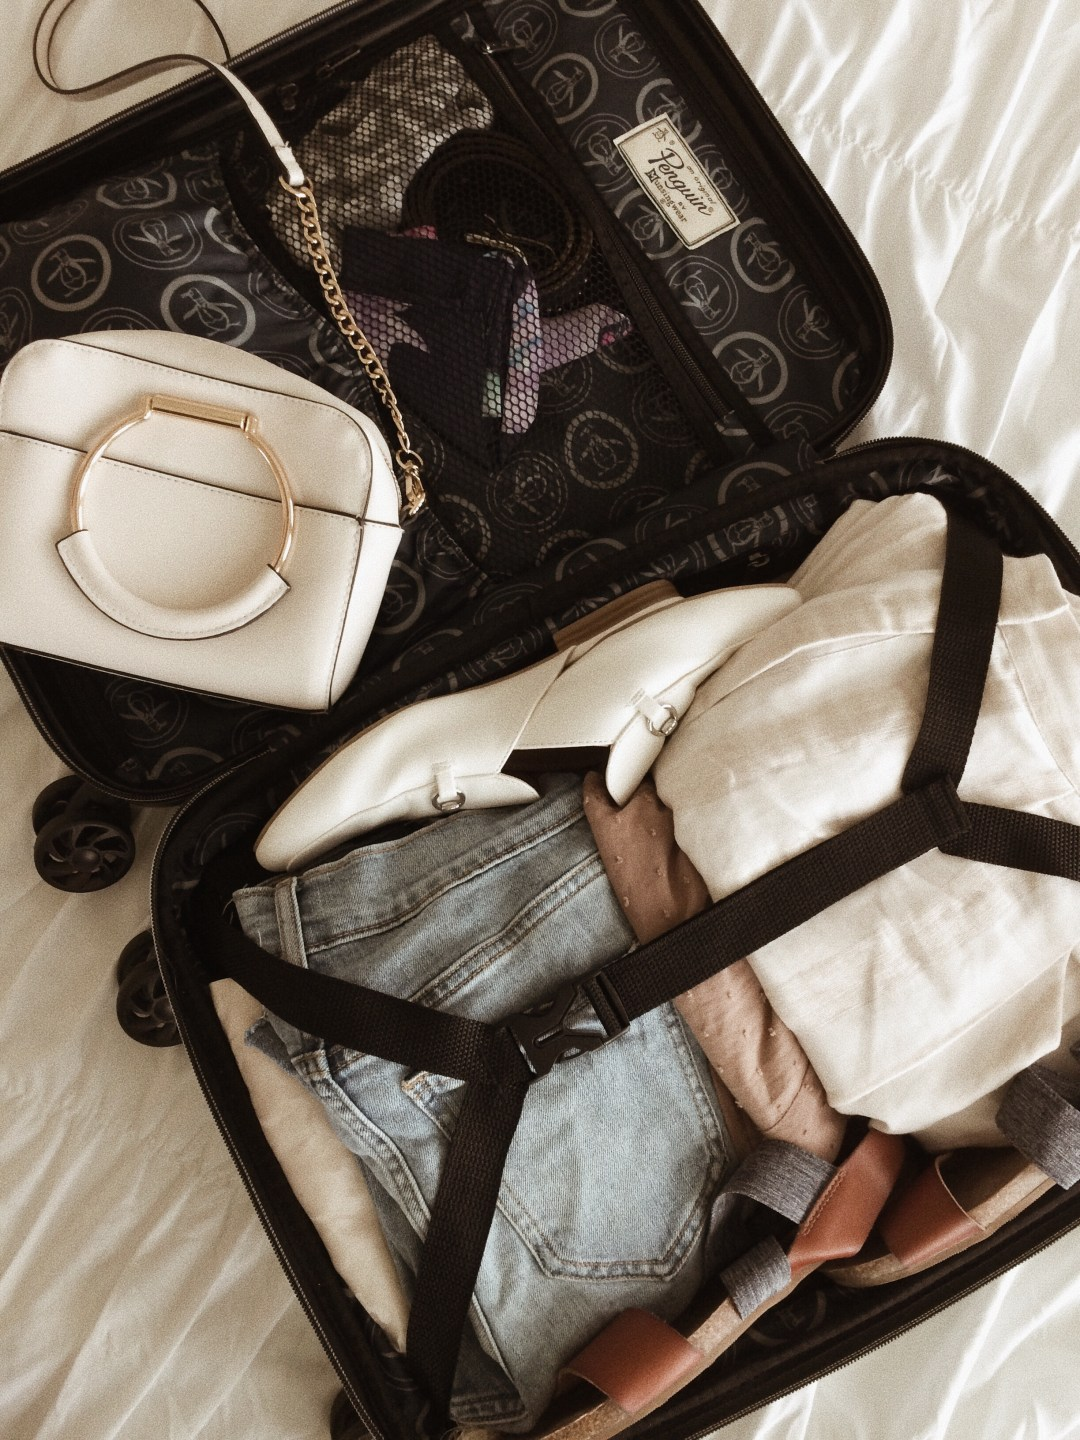 packing, luggage, packing tips, how to pack a carry on, what to pack